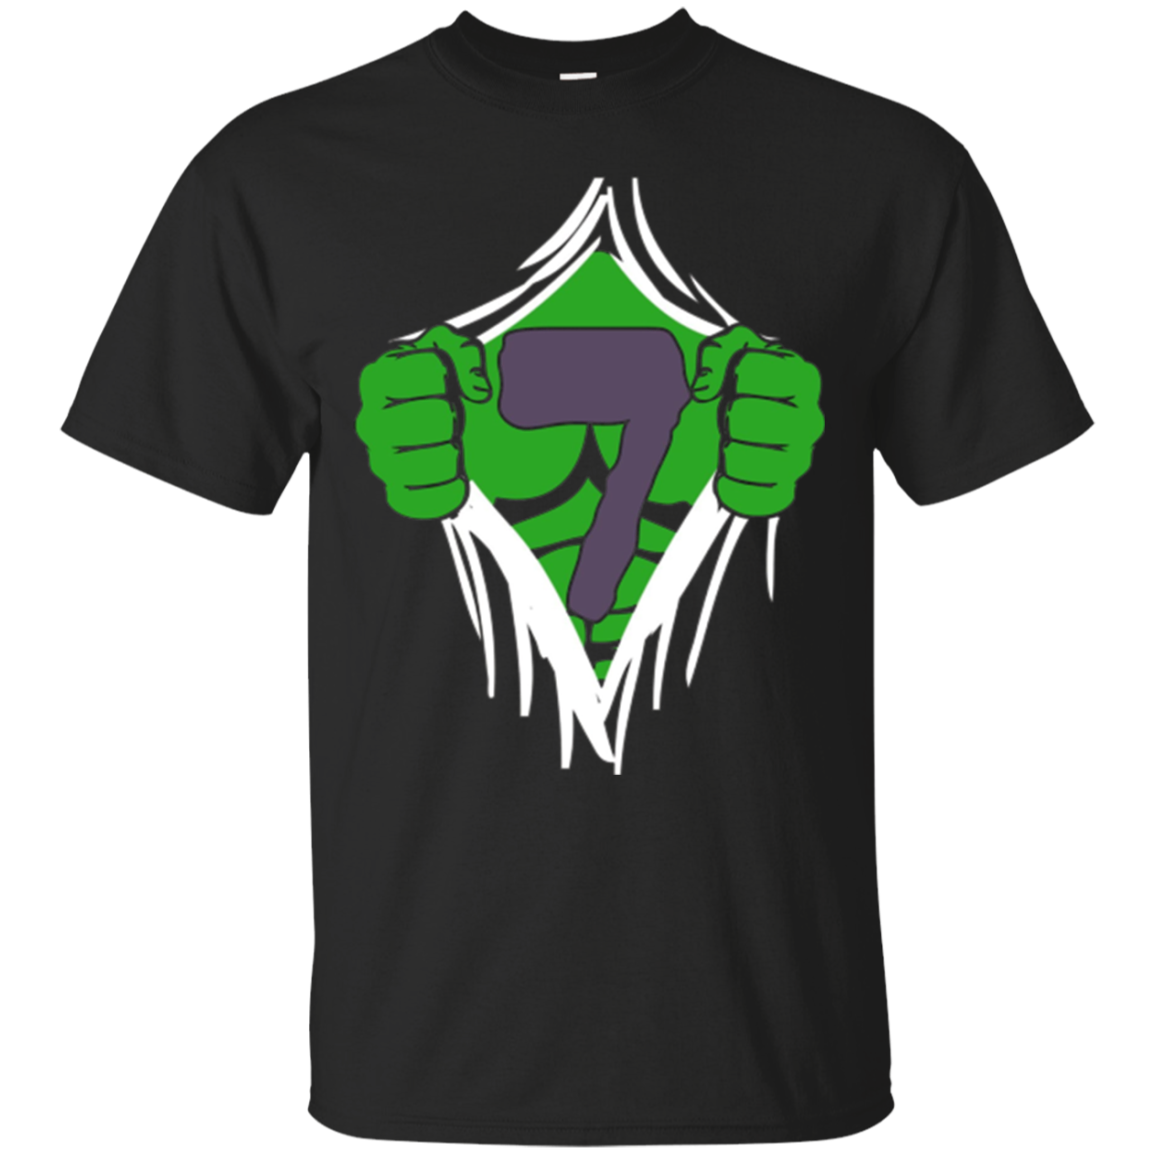 Green Man Chest Superhero Birthday Shirt For 7 Year Old Boys